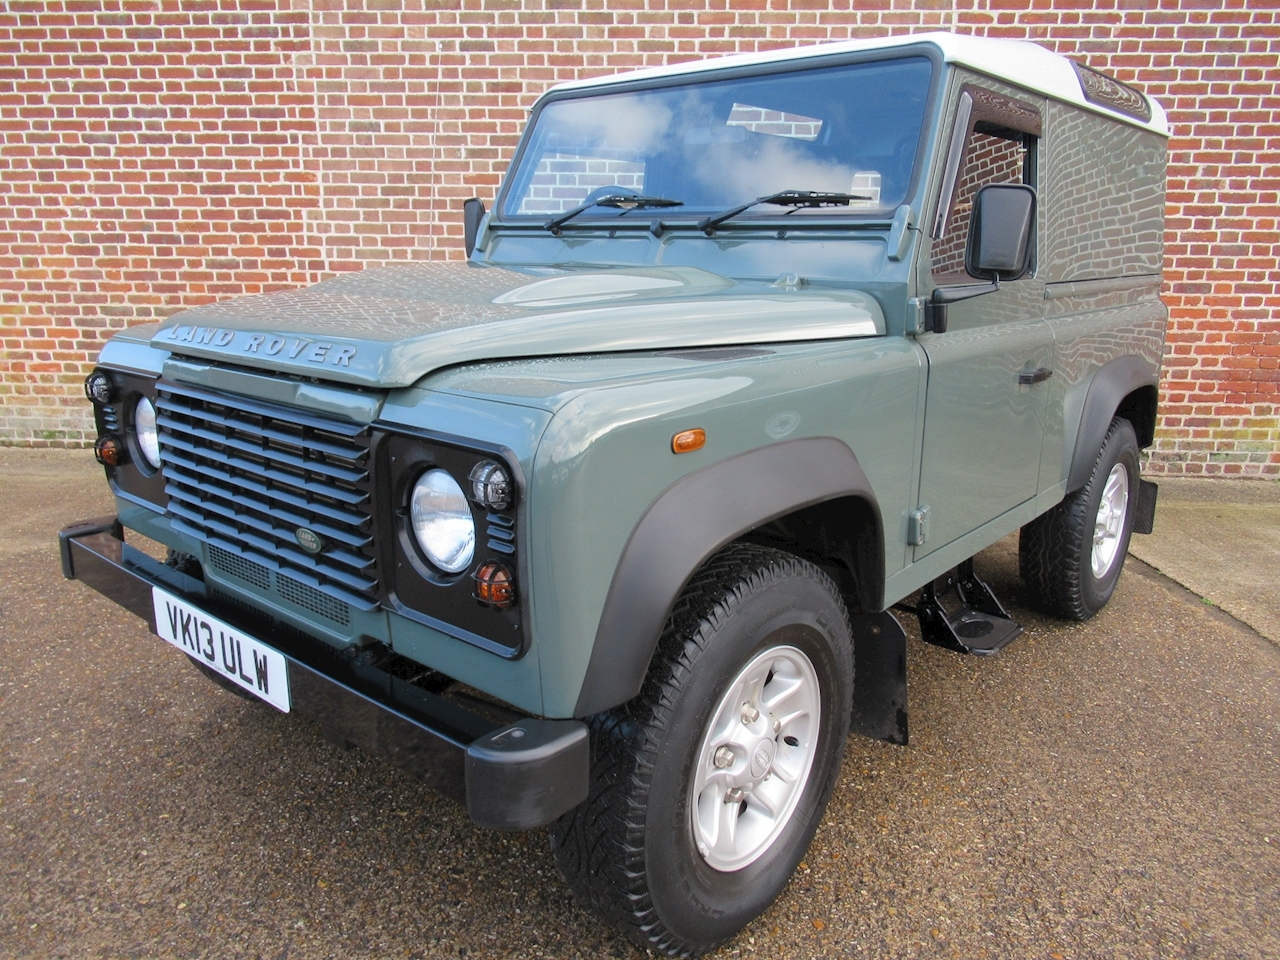 Land Rover Defender 90 Td Hard Top 2.2 2dr Light 4X4 Utility Manual Diesel